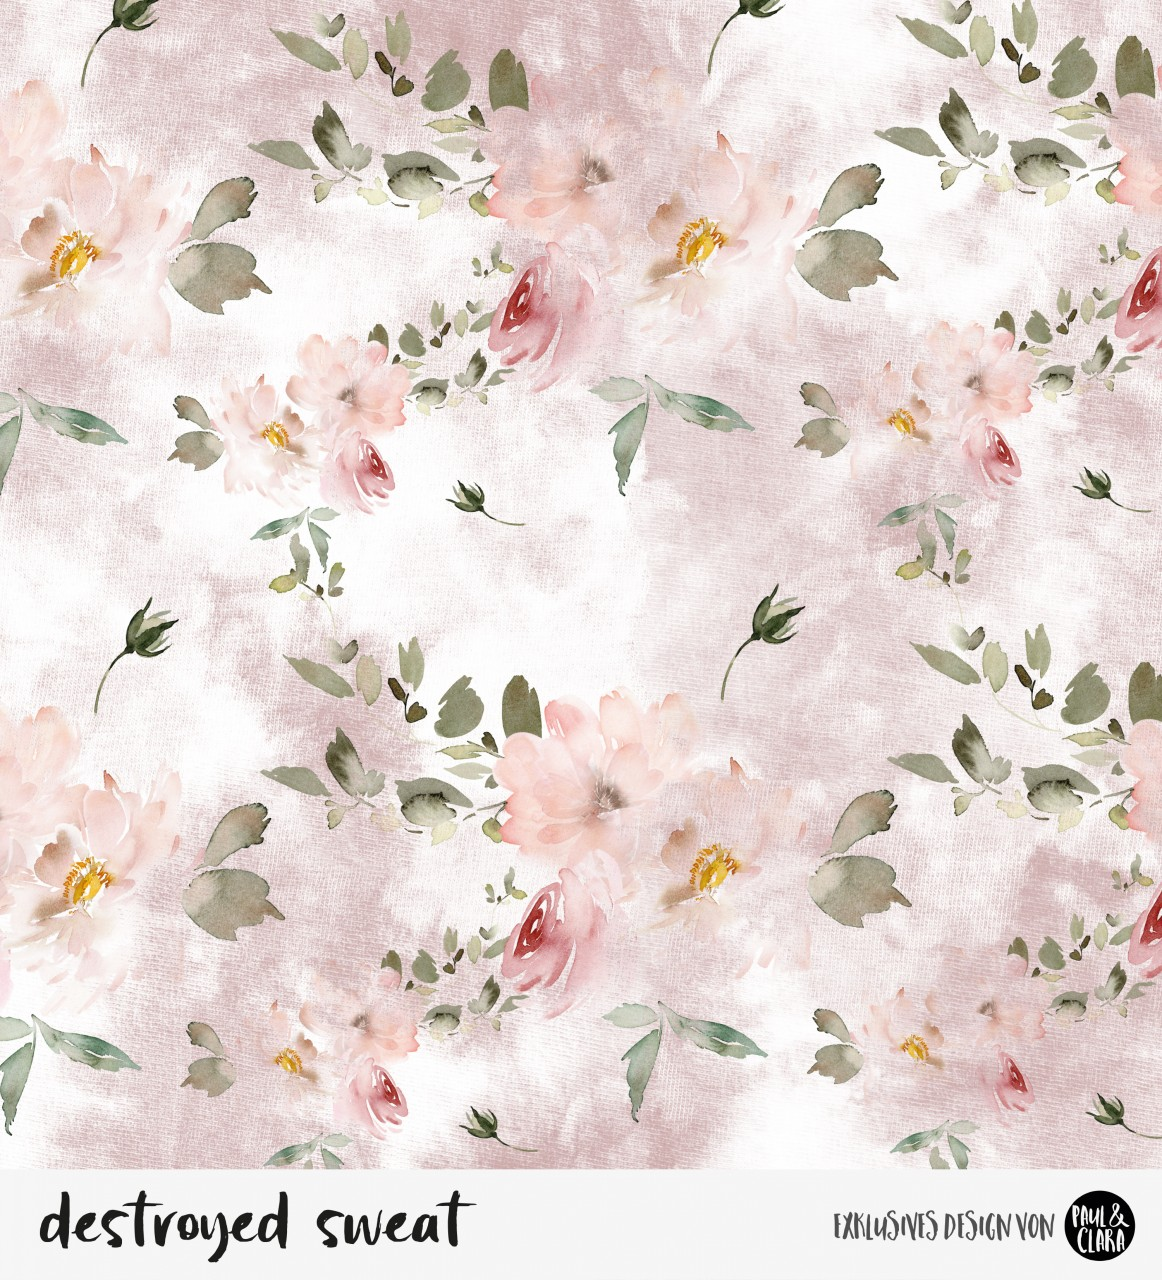 destroyed sweat flowers - Rosa *Bio-Sommersweat*